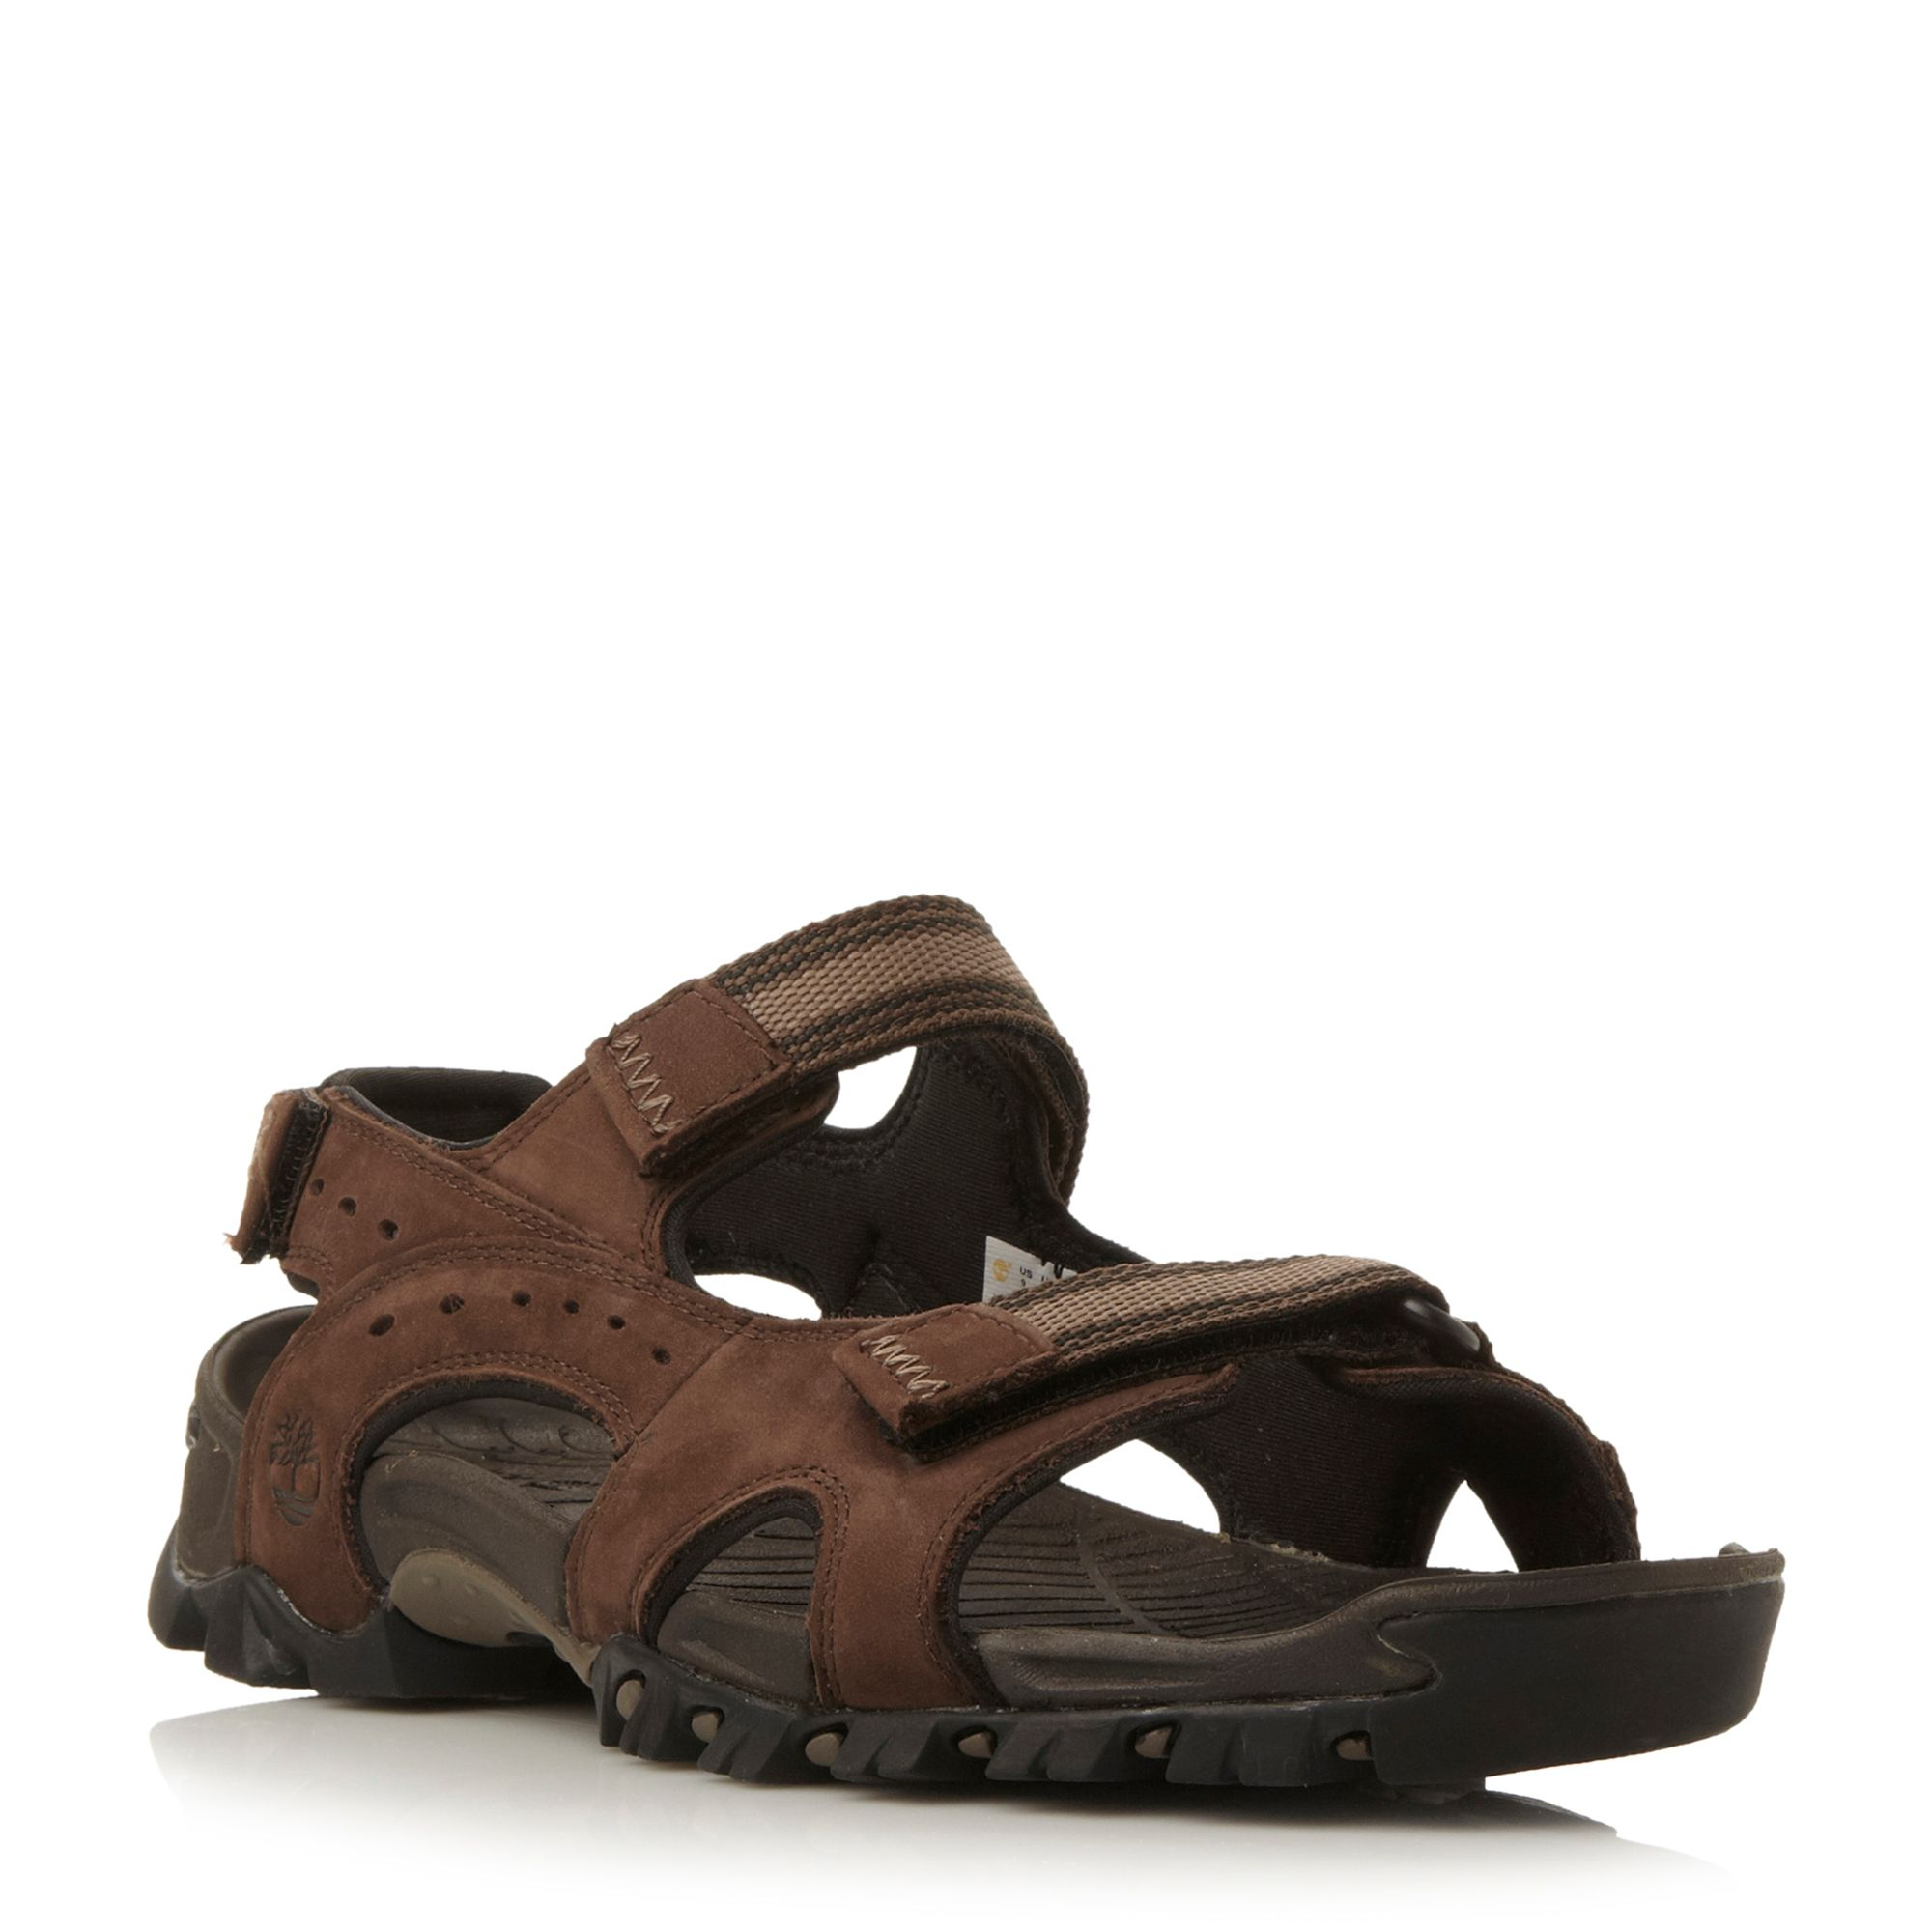 Timberland Velcro Strap Casual Sandals In Brown For Men Lyst